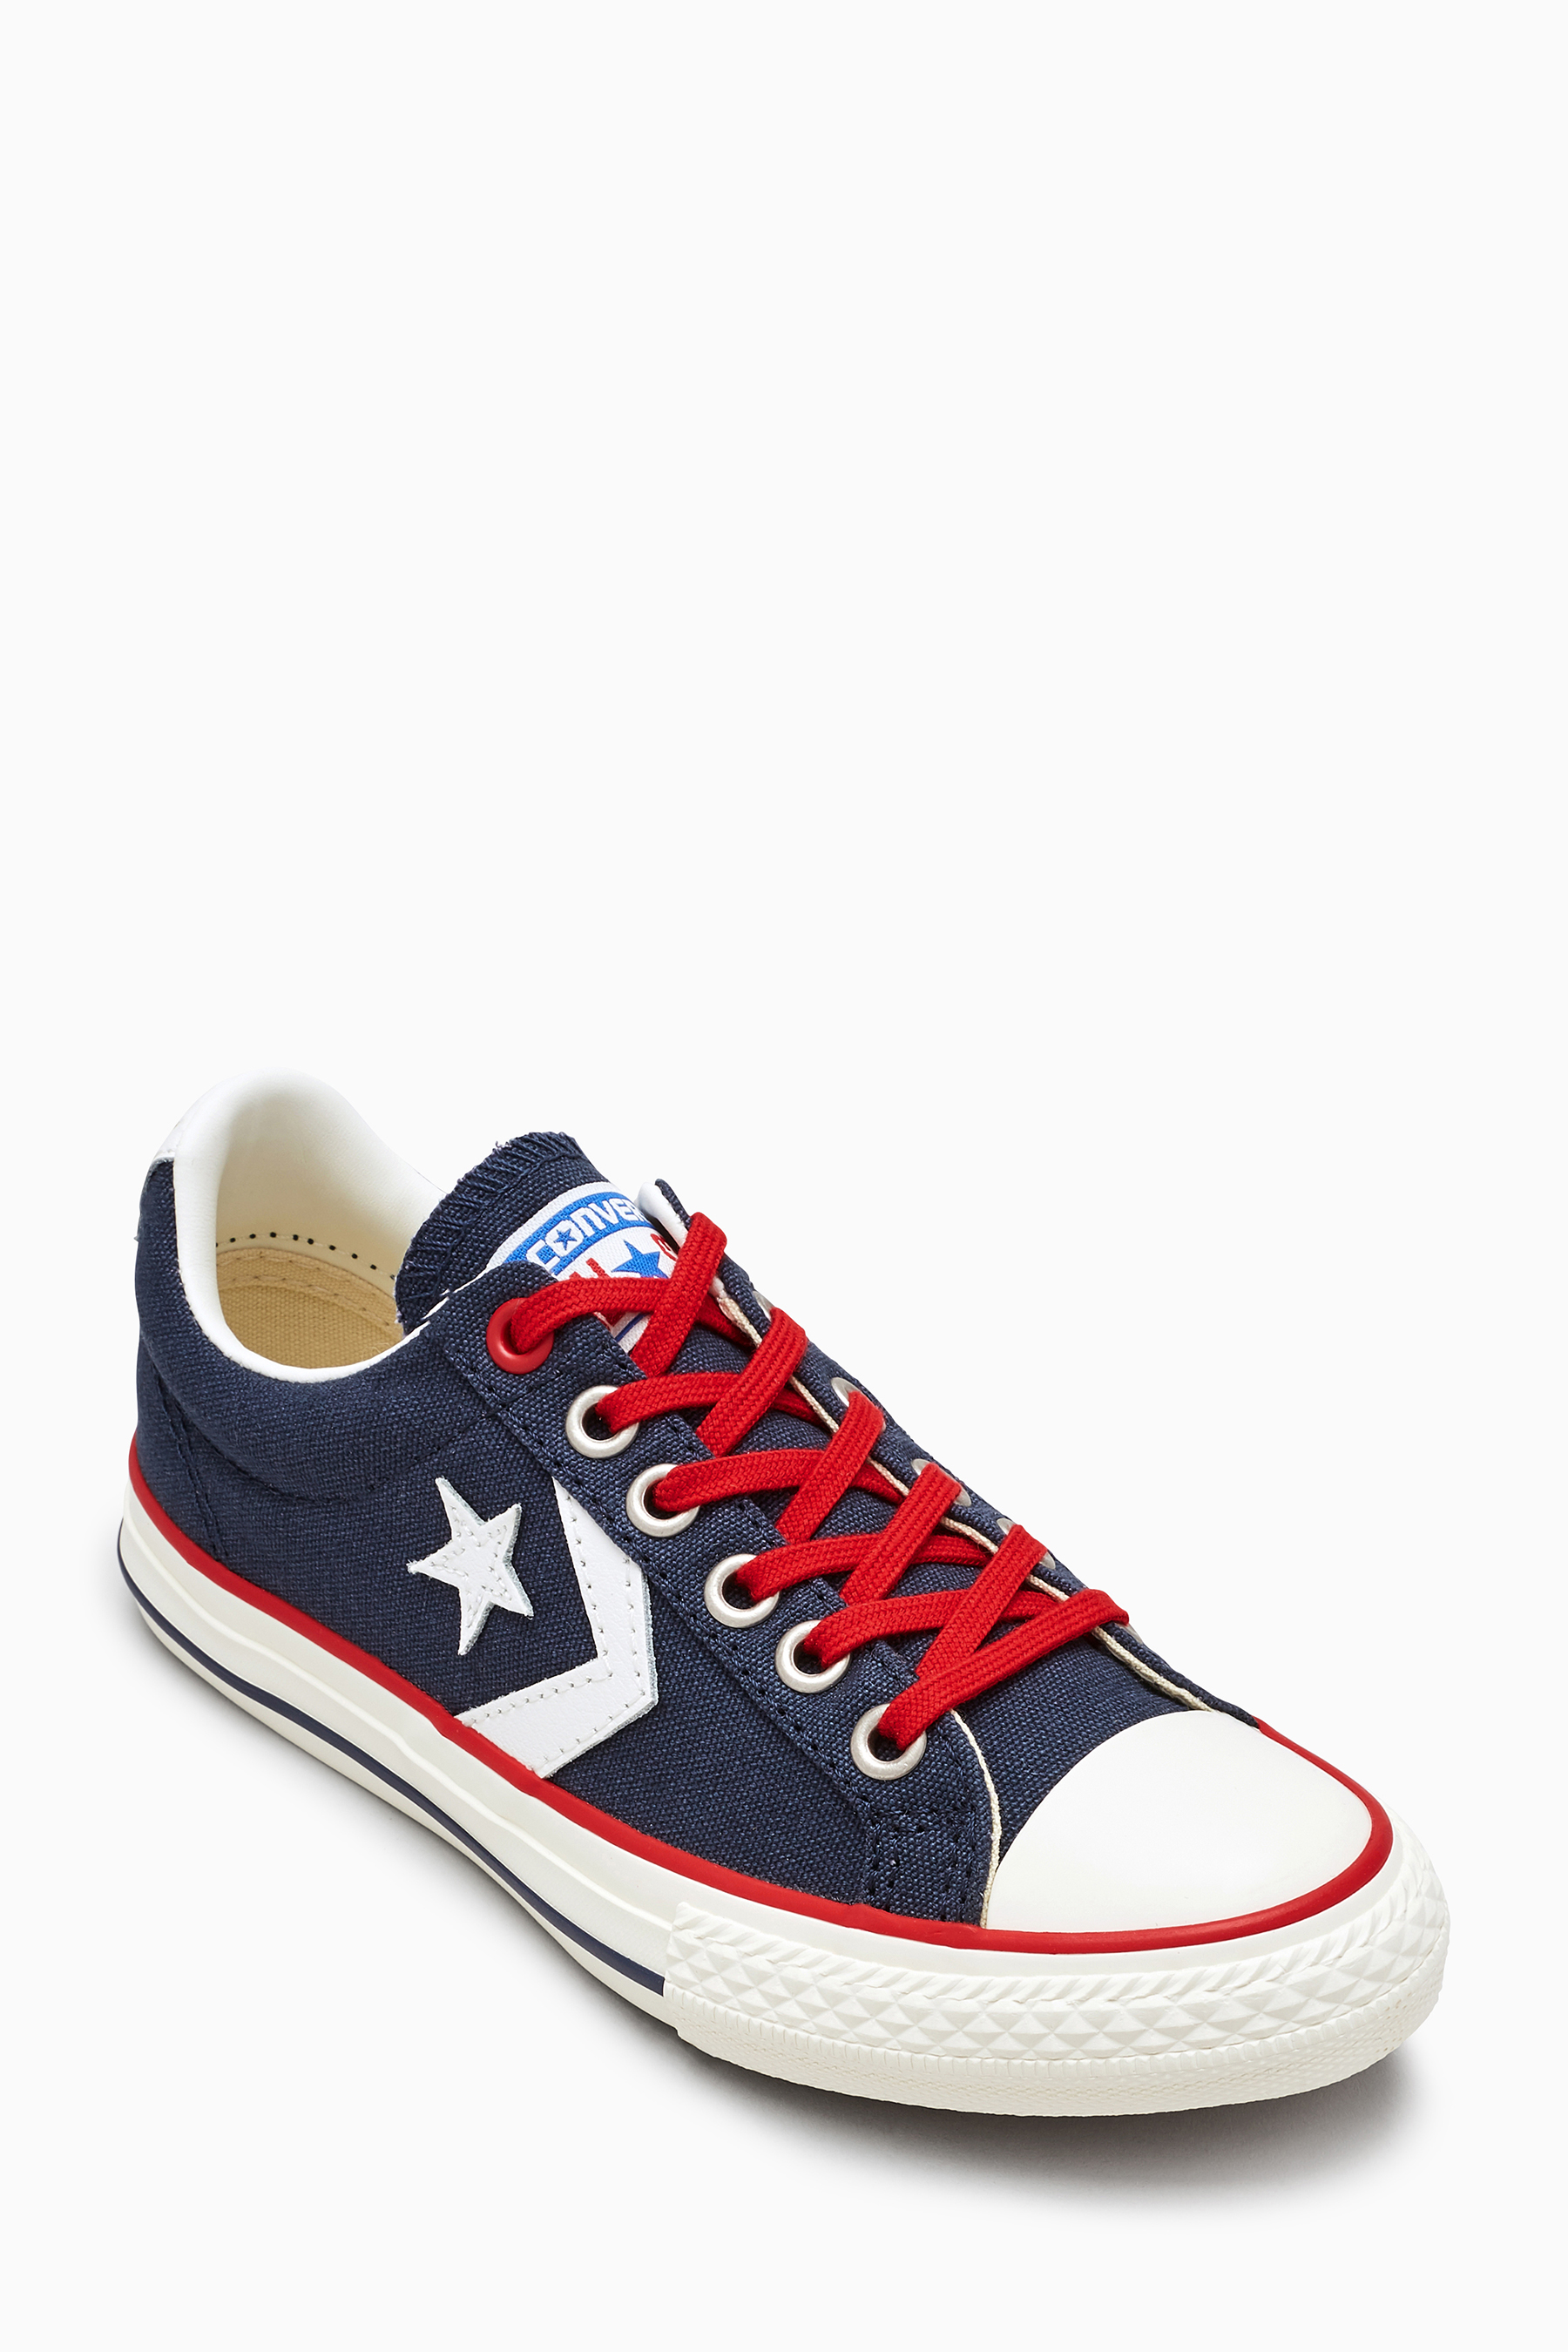 Boys Converse Star Player Blue | Products | Converse, Boys